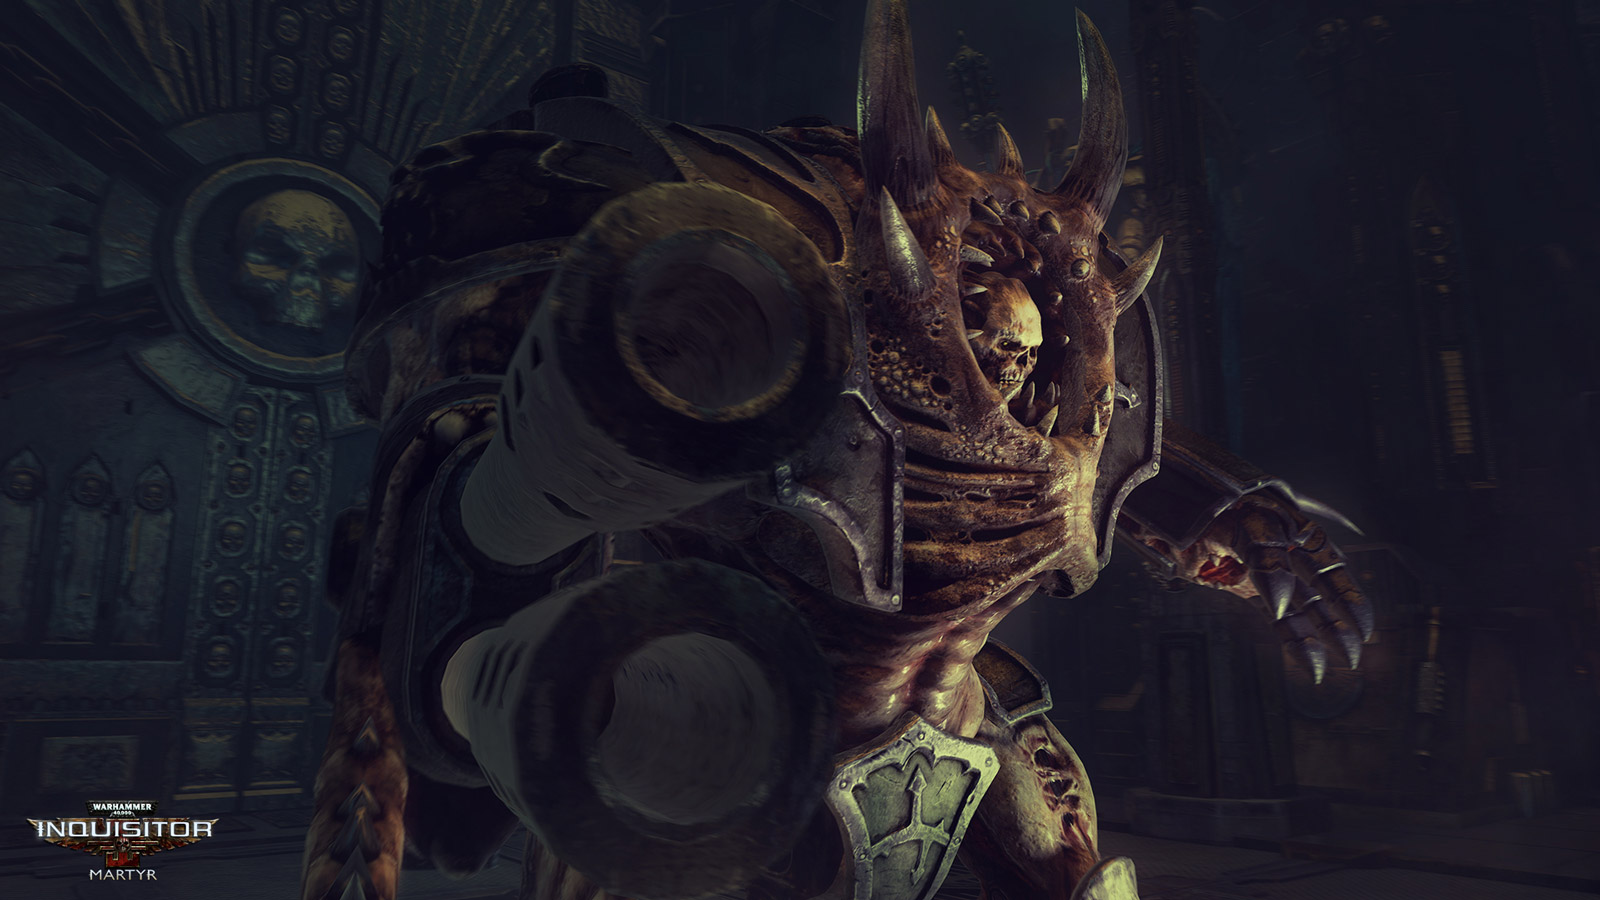 Free Warhammer 40,000: Inquisitor - Martyr Wallpaper in 1600x900